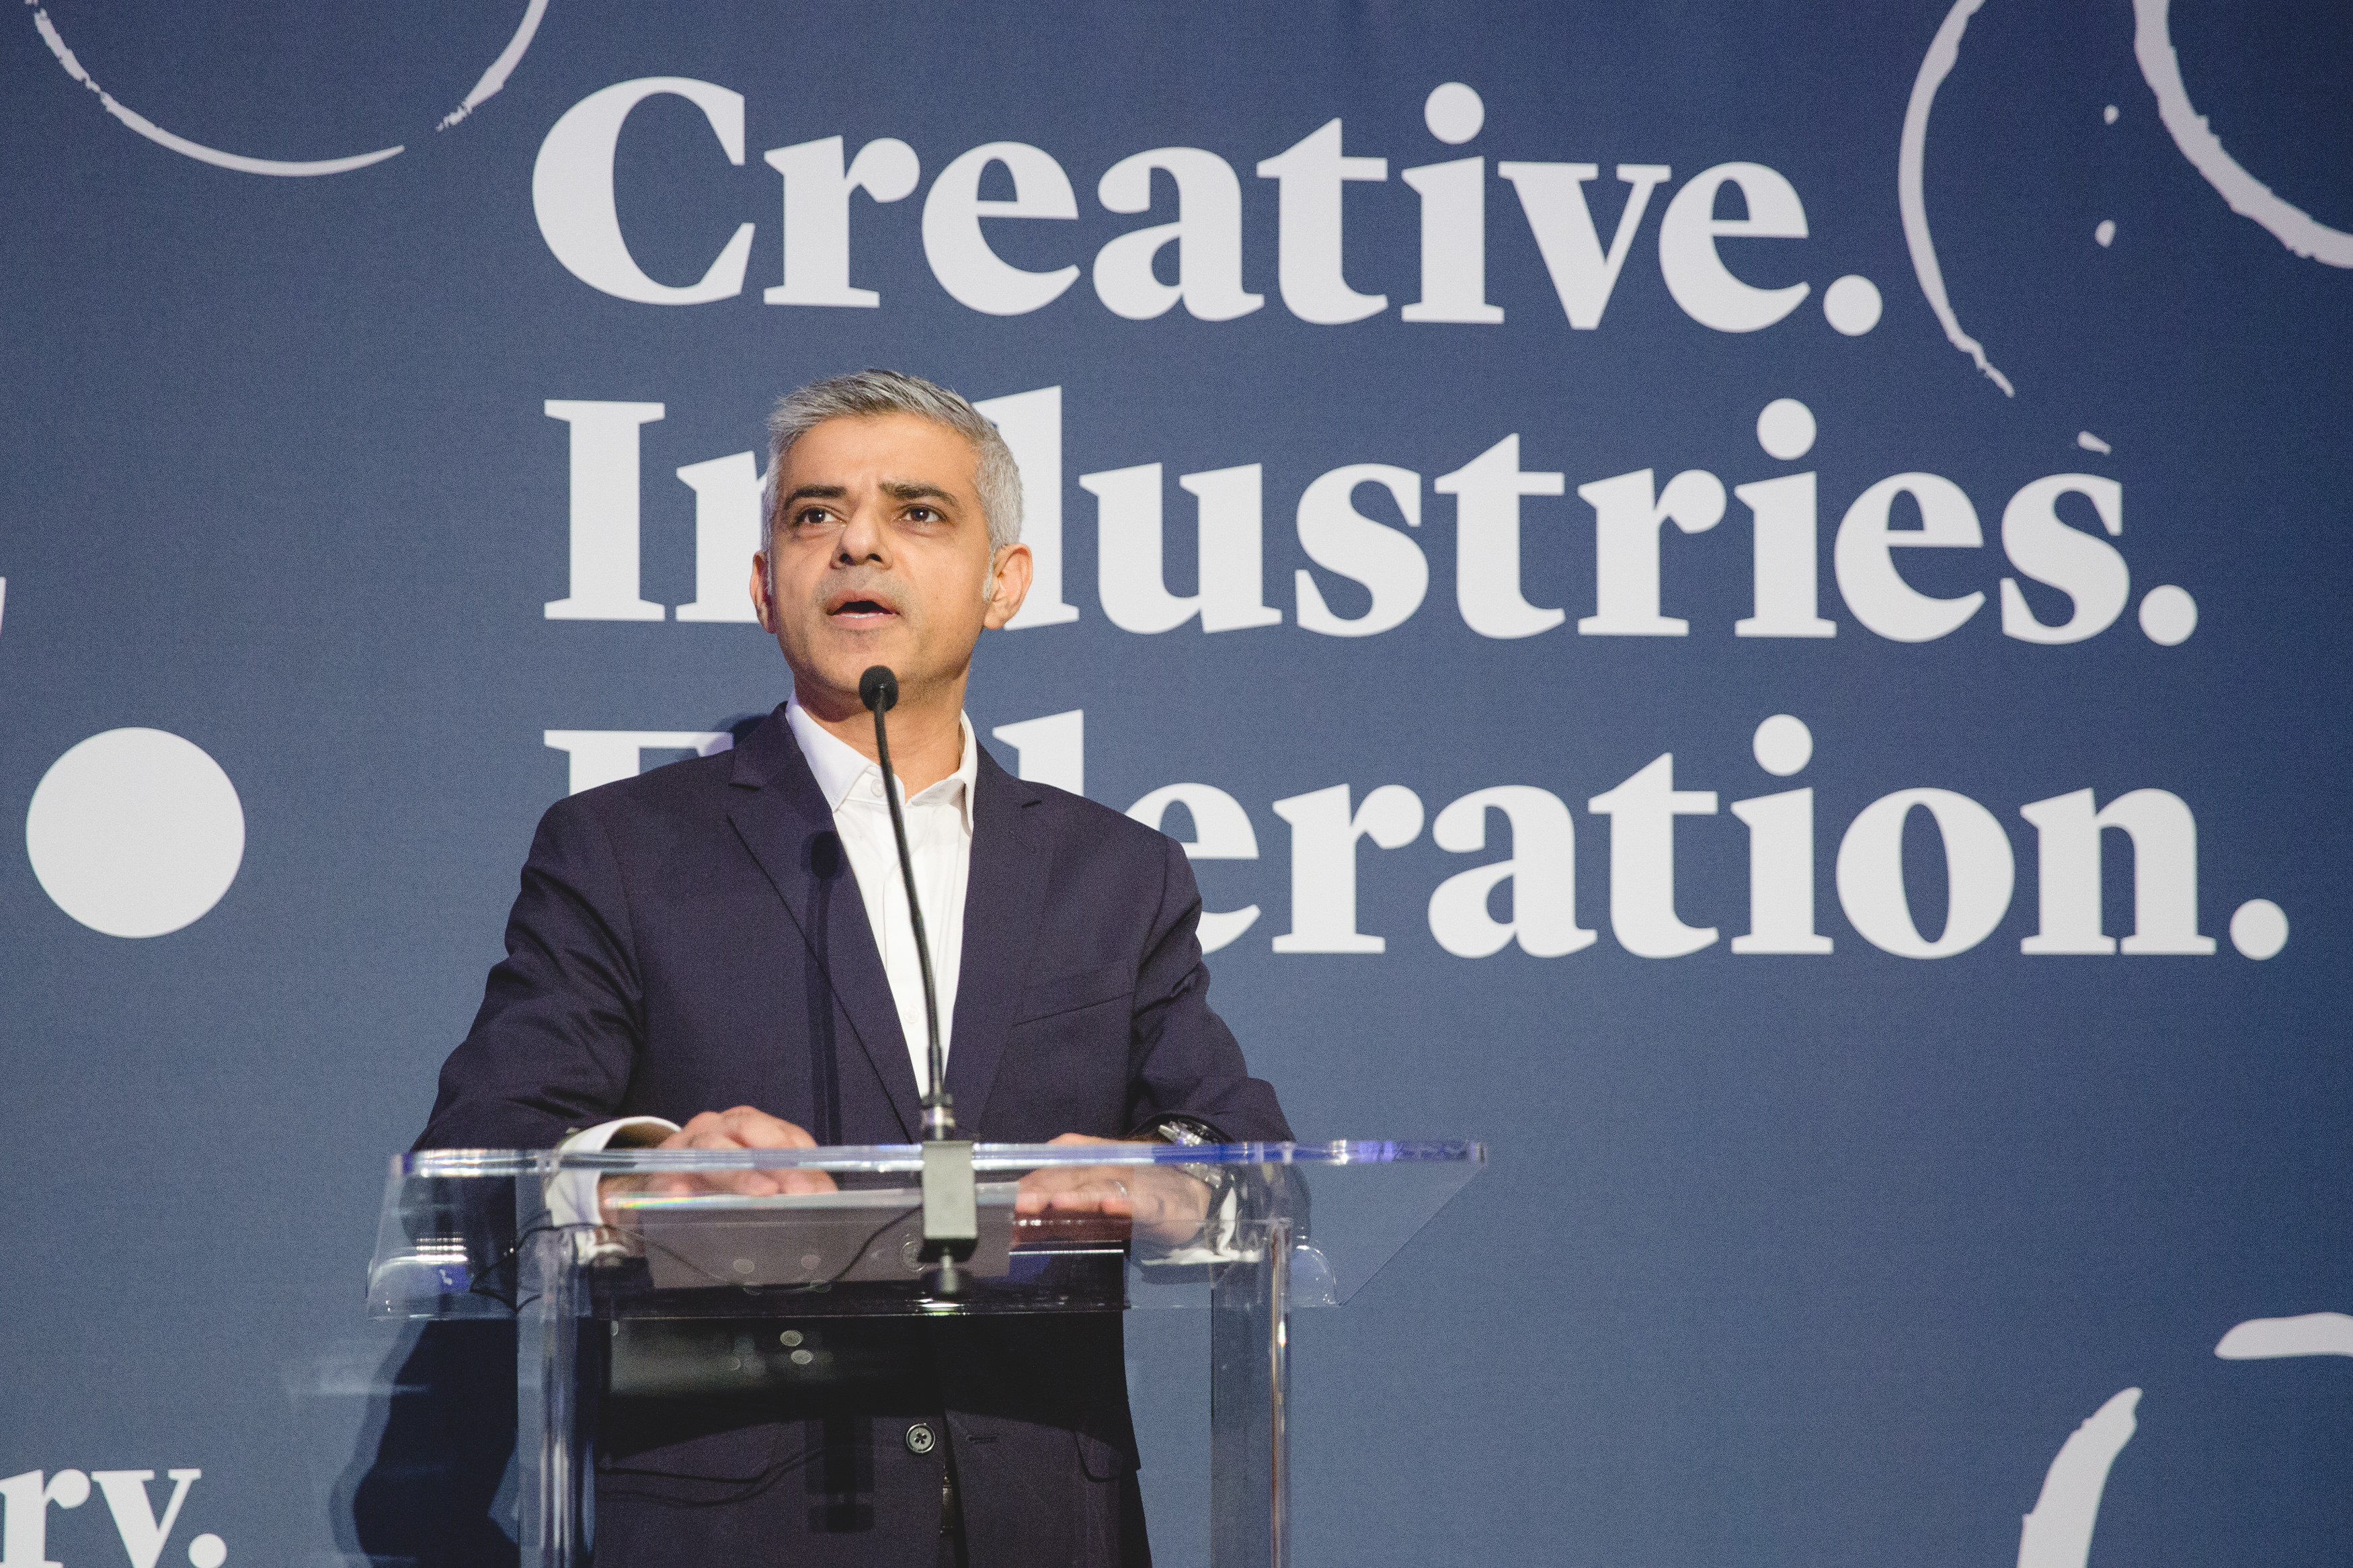 The second anniversary of the Creative Industries Foundation.